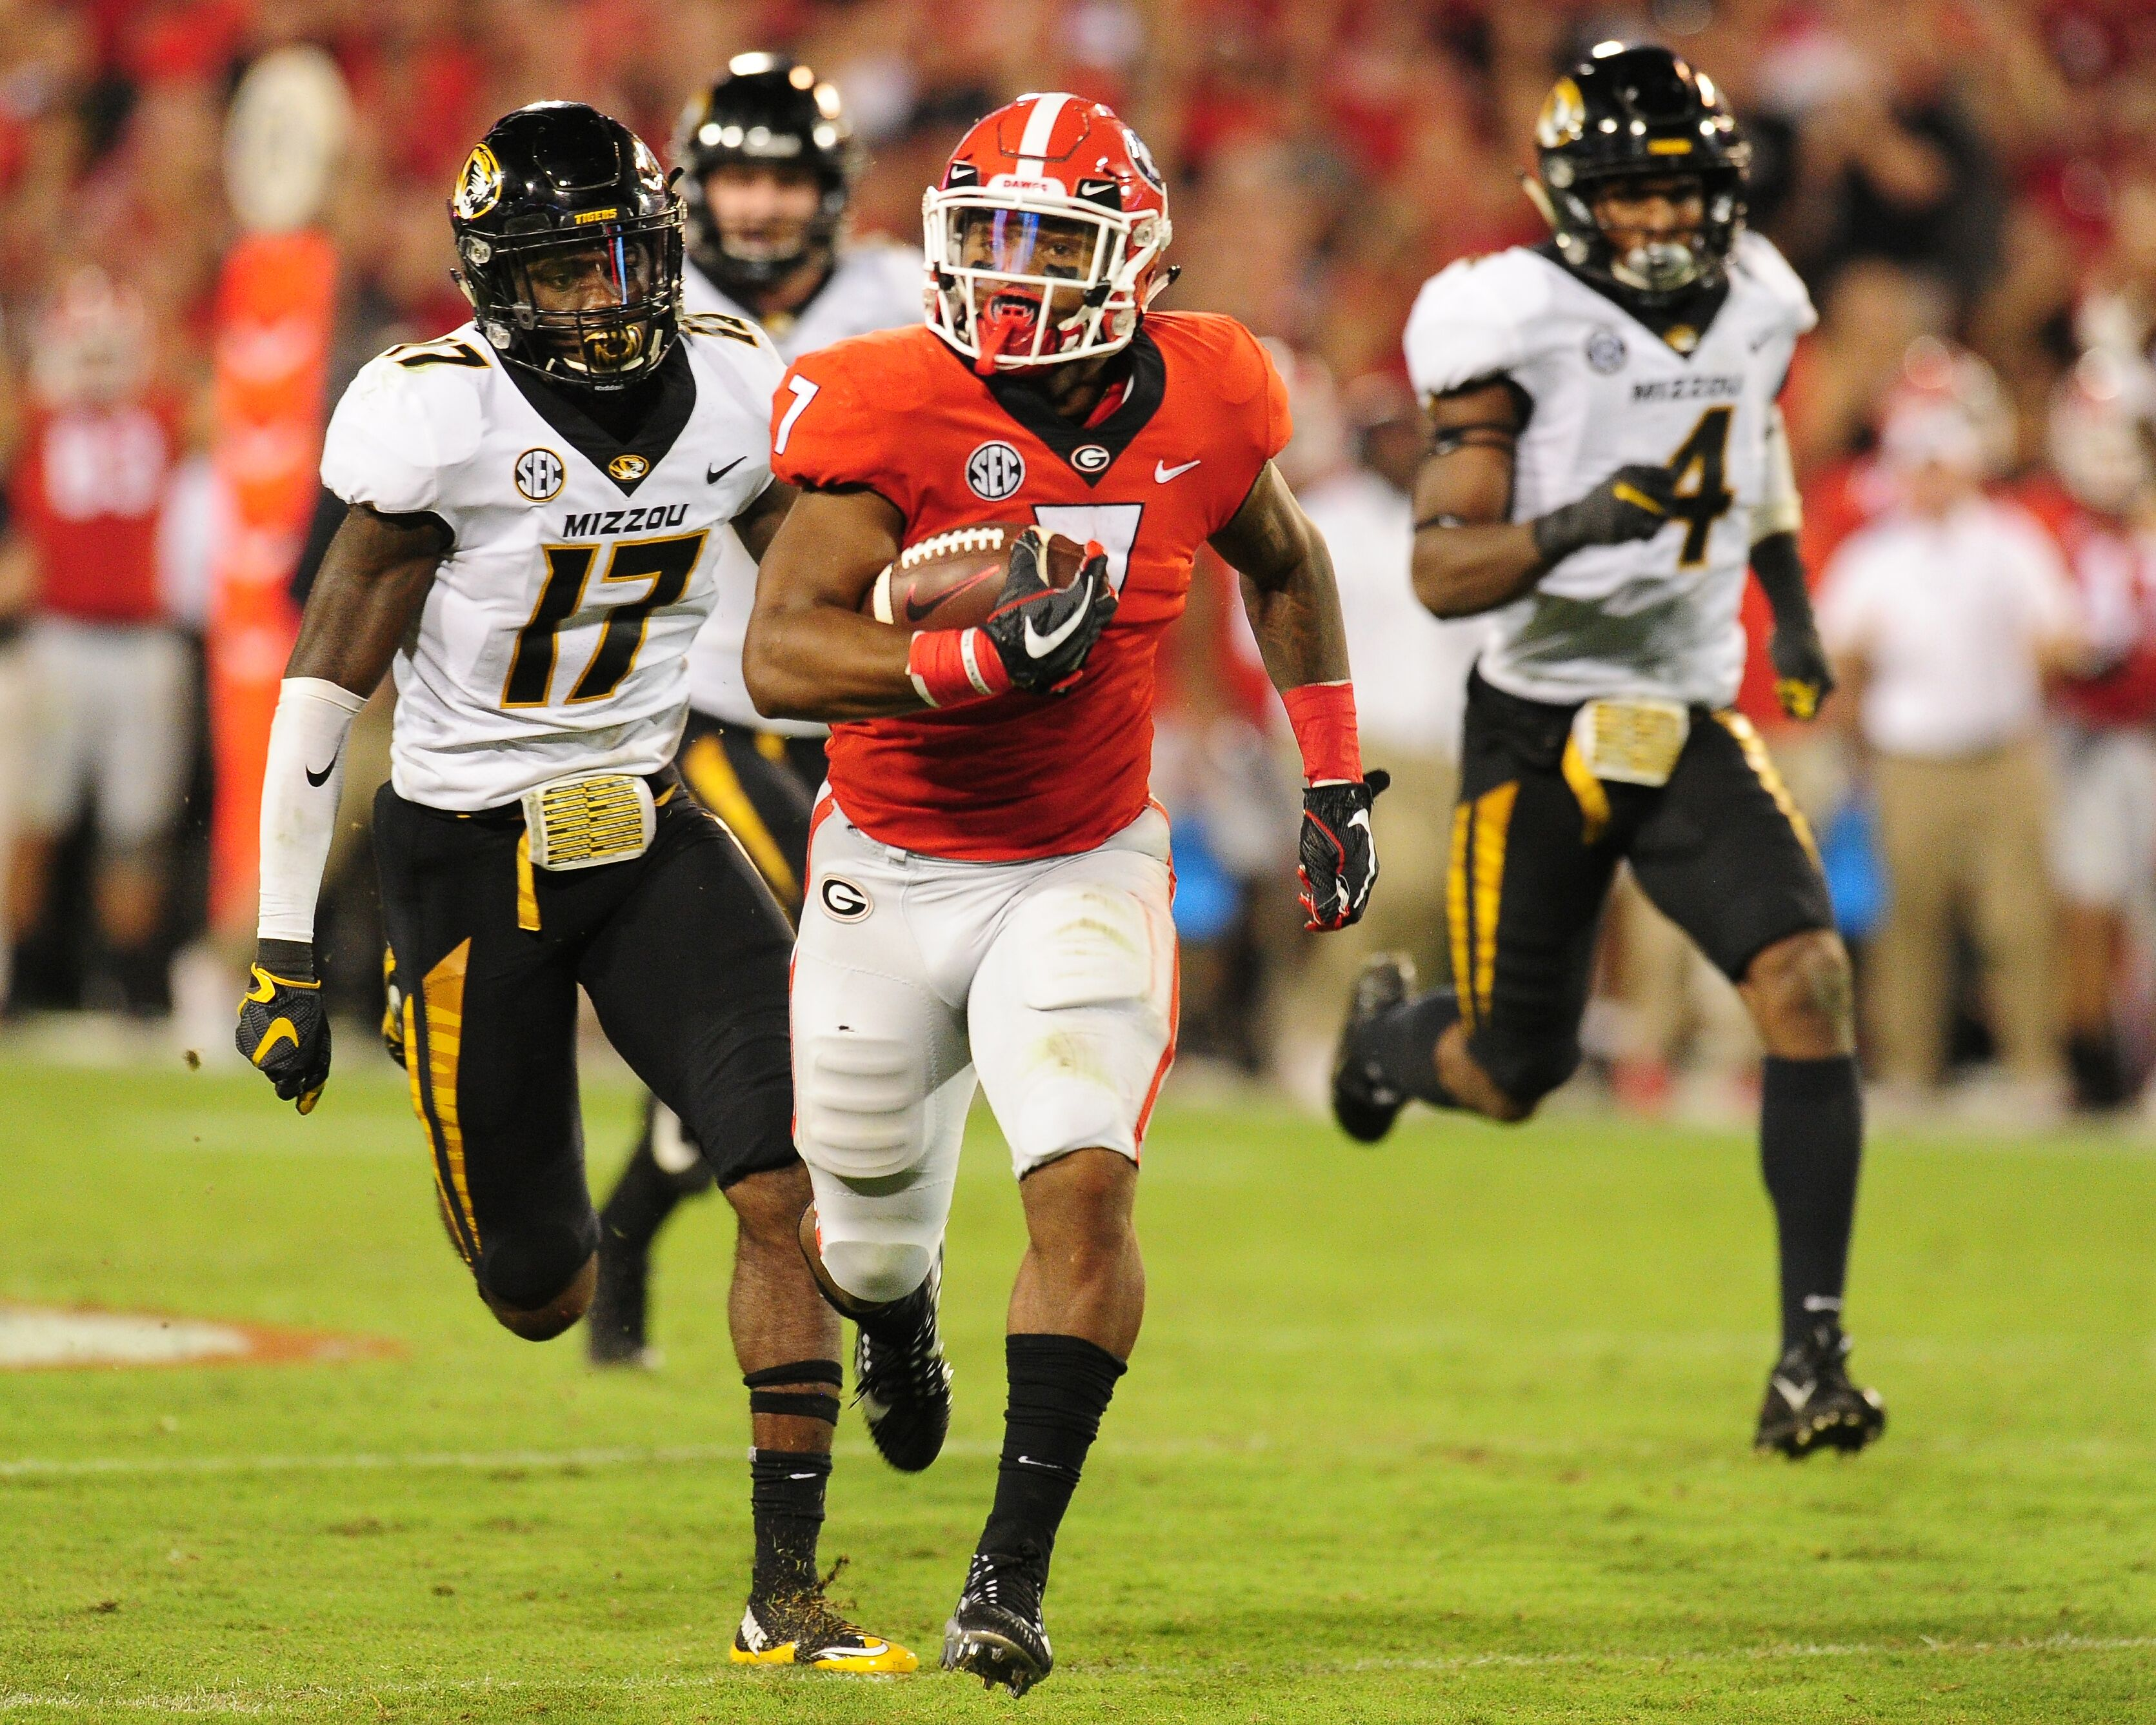 2017 2018 Bowl Games >> Georgia Football 2018 recruit: Nations No.3 RB James Cook - Page 3